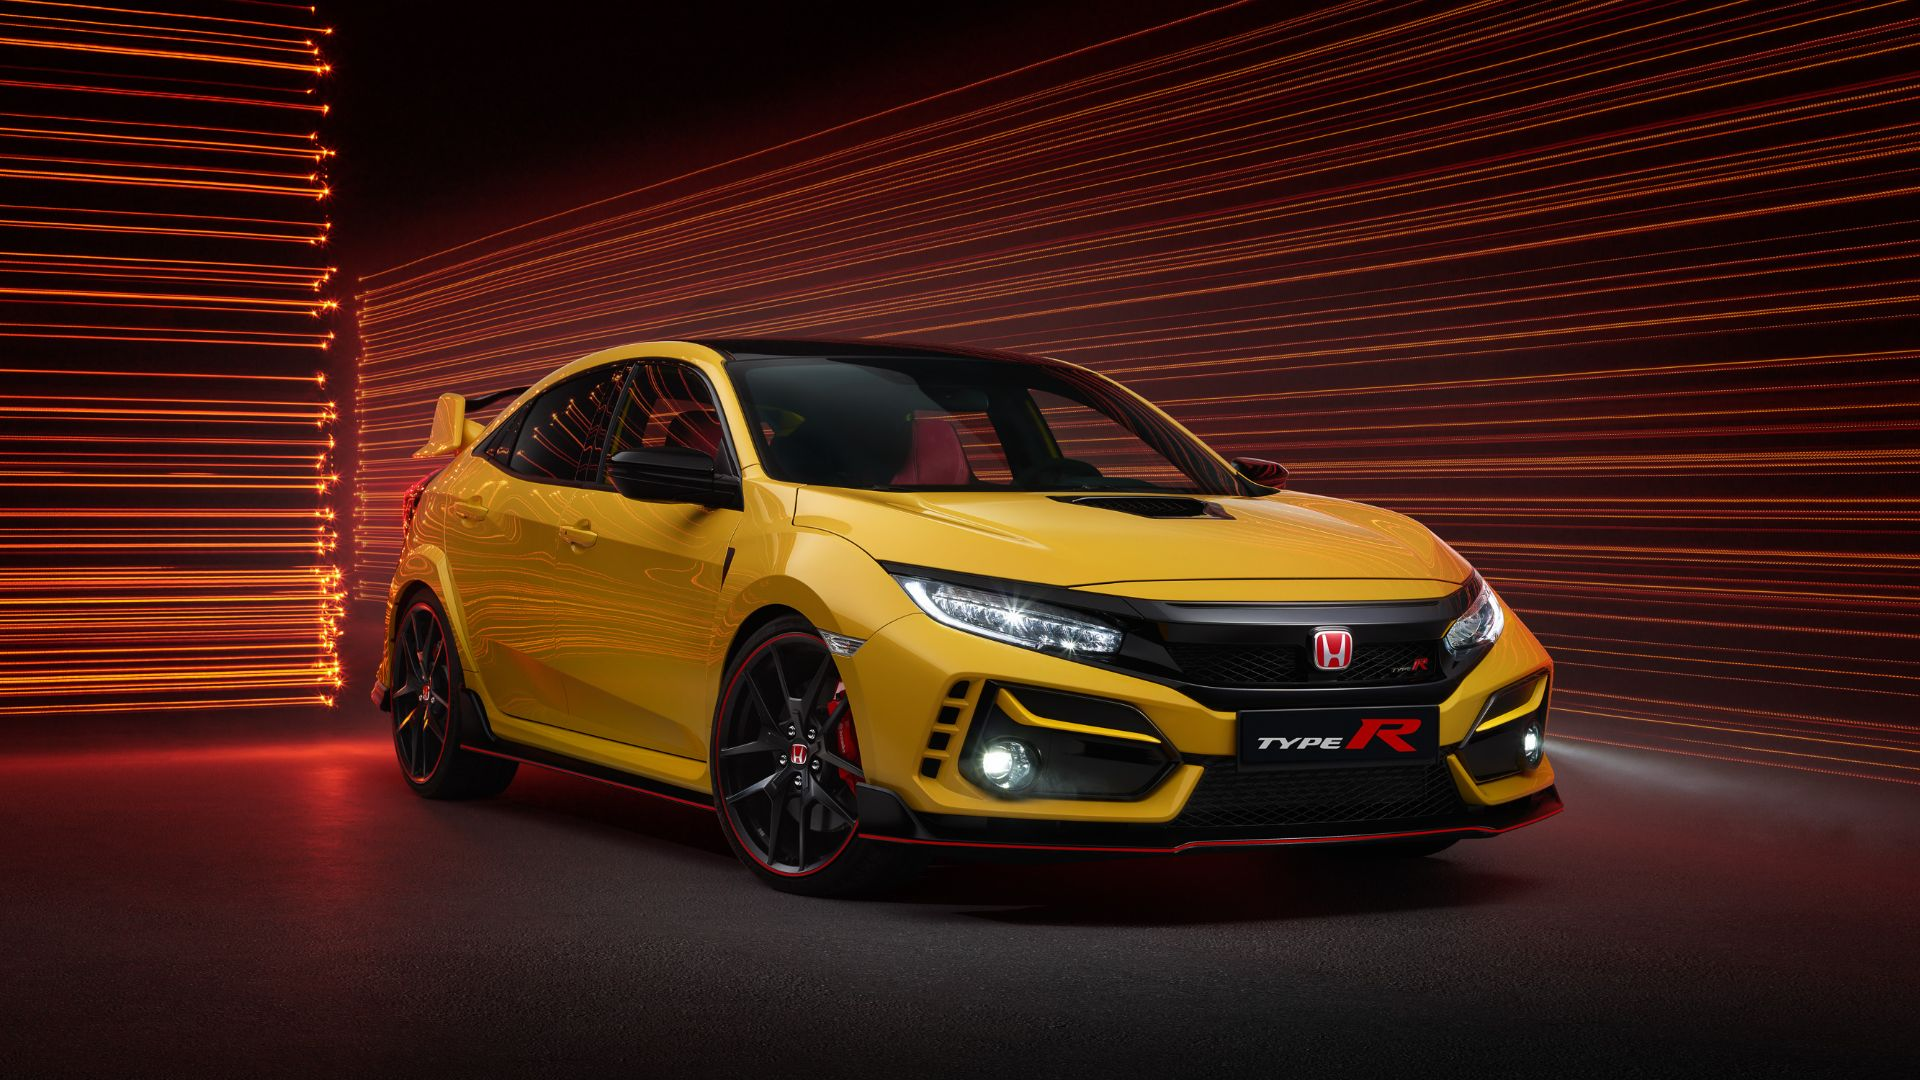 honda reveals 2020 civic type r including hardcore limited edition honda reveals 2020 civic type r